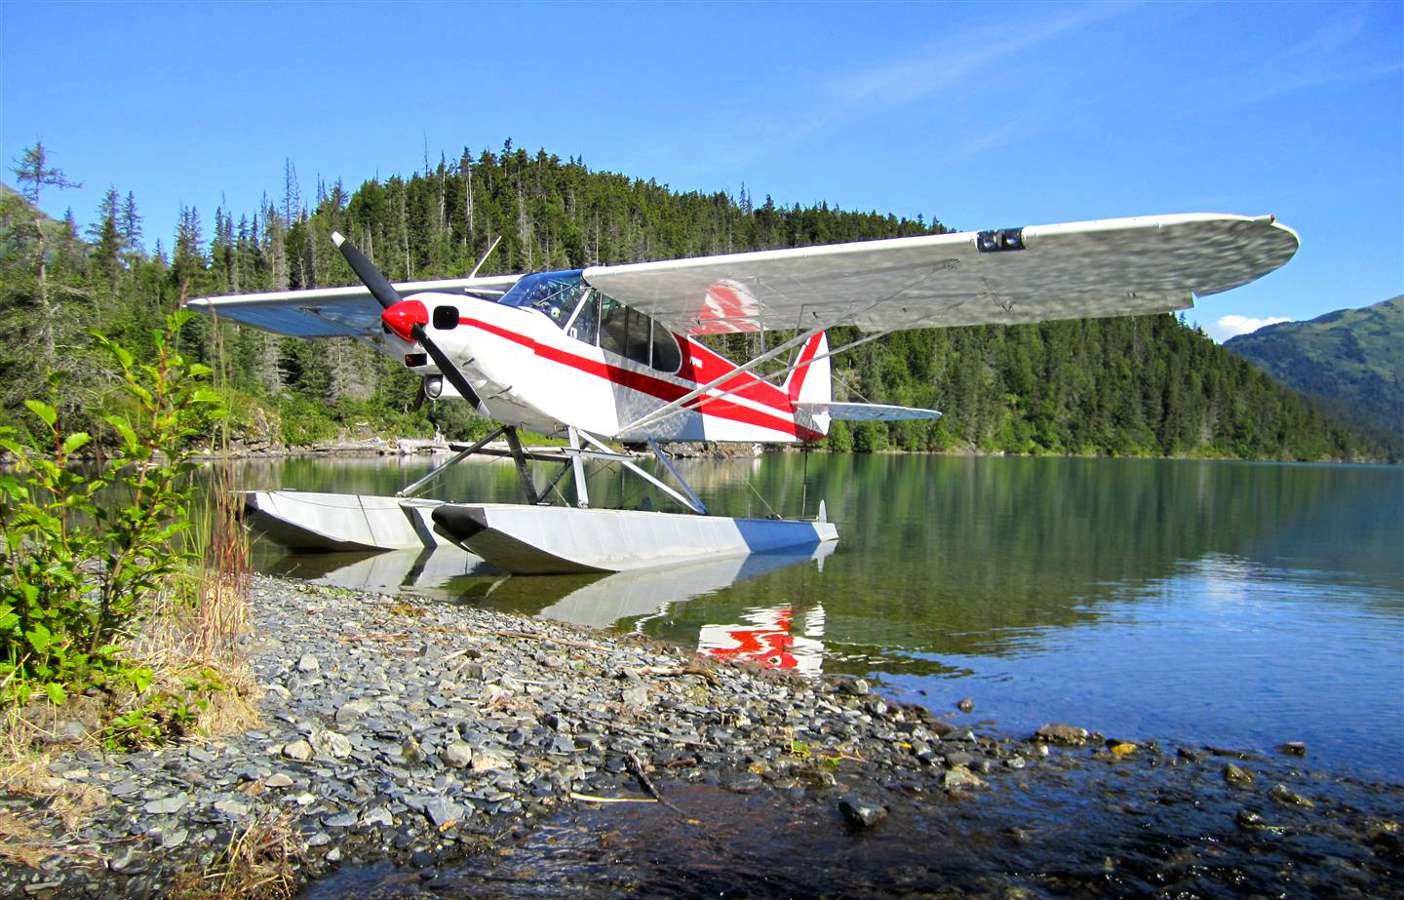 A seaplane docked in a small Alaskan glacial lake.